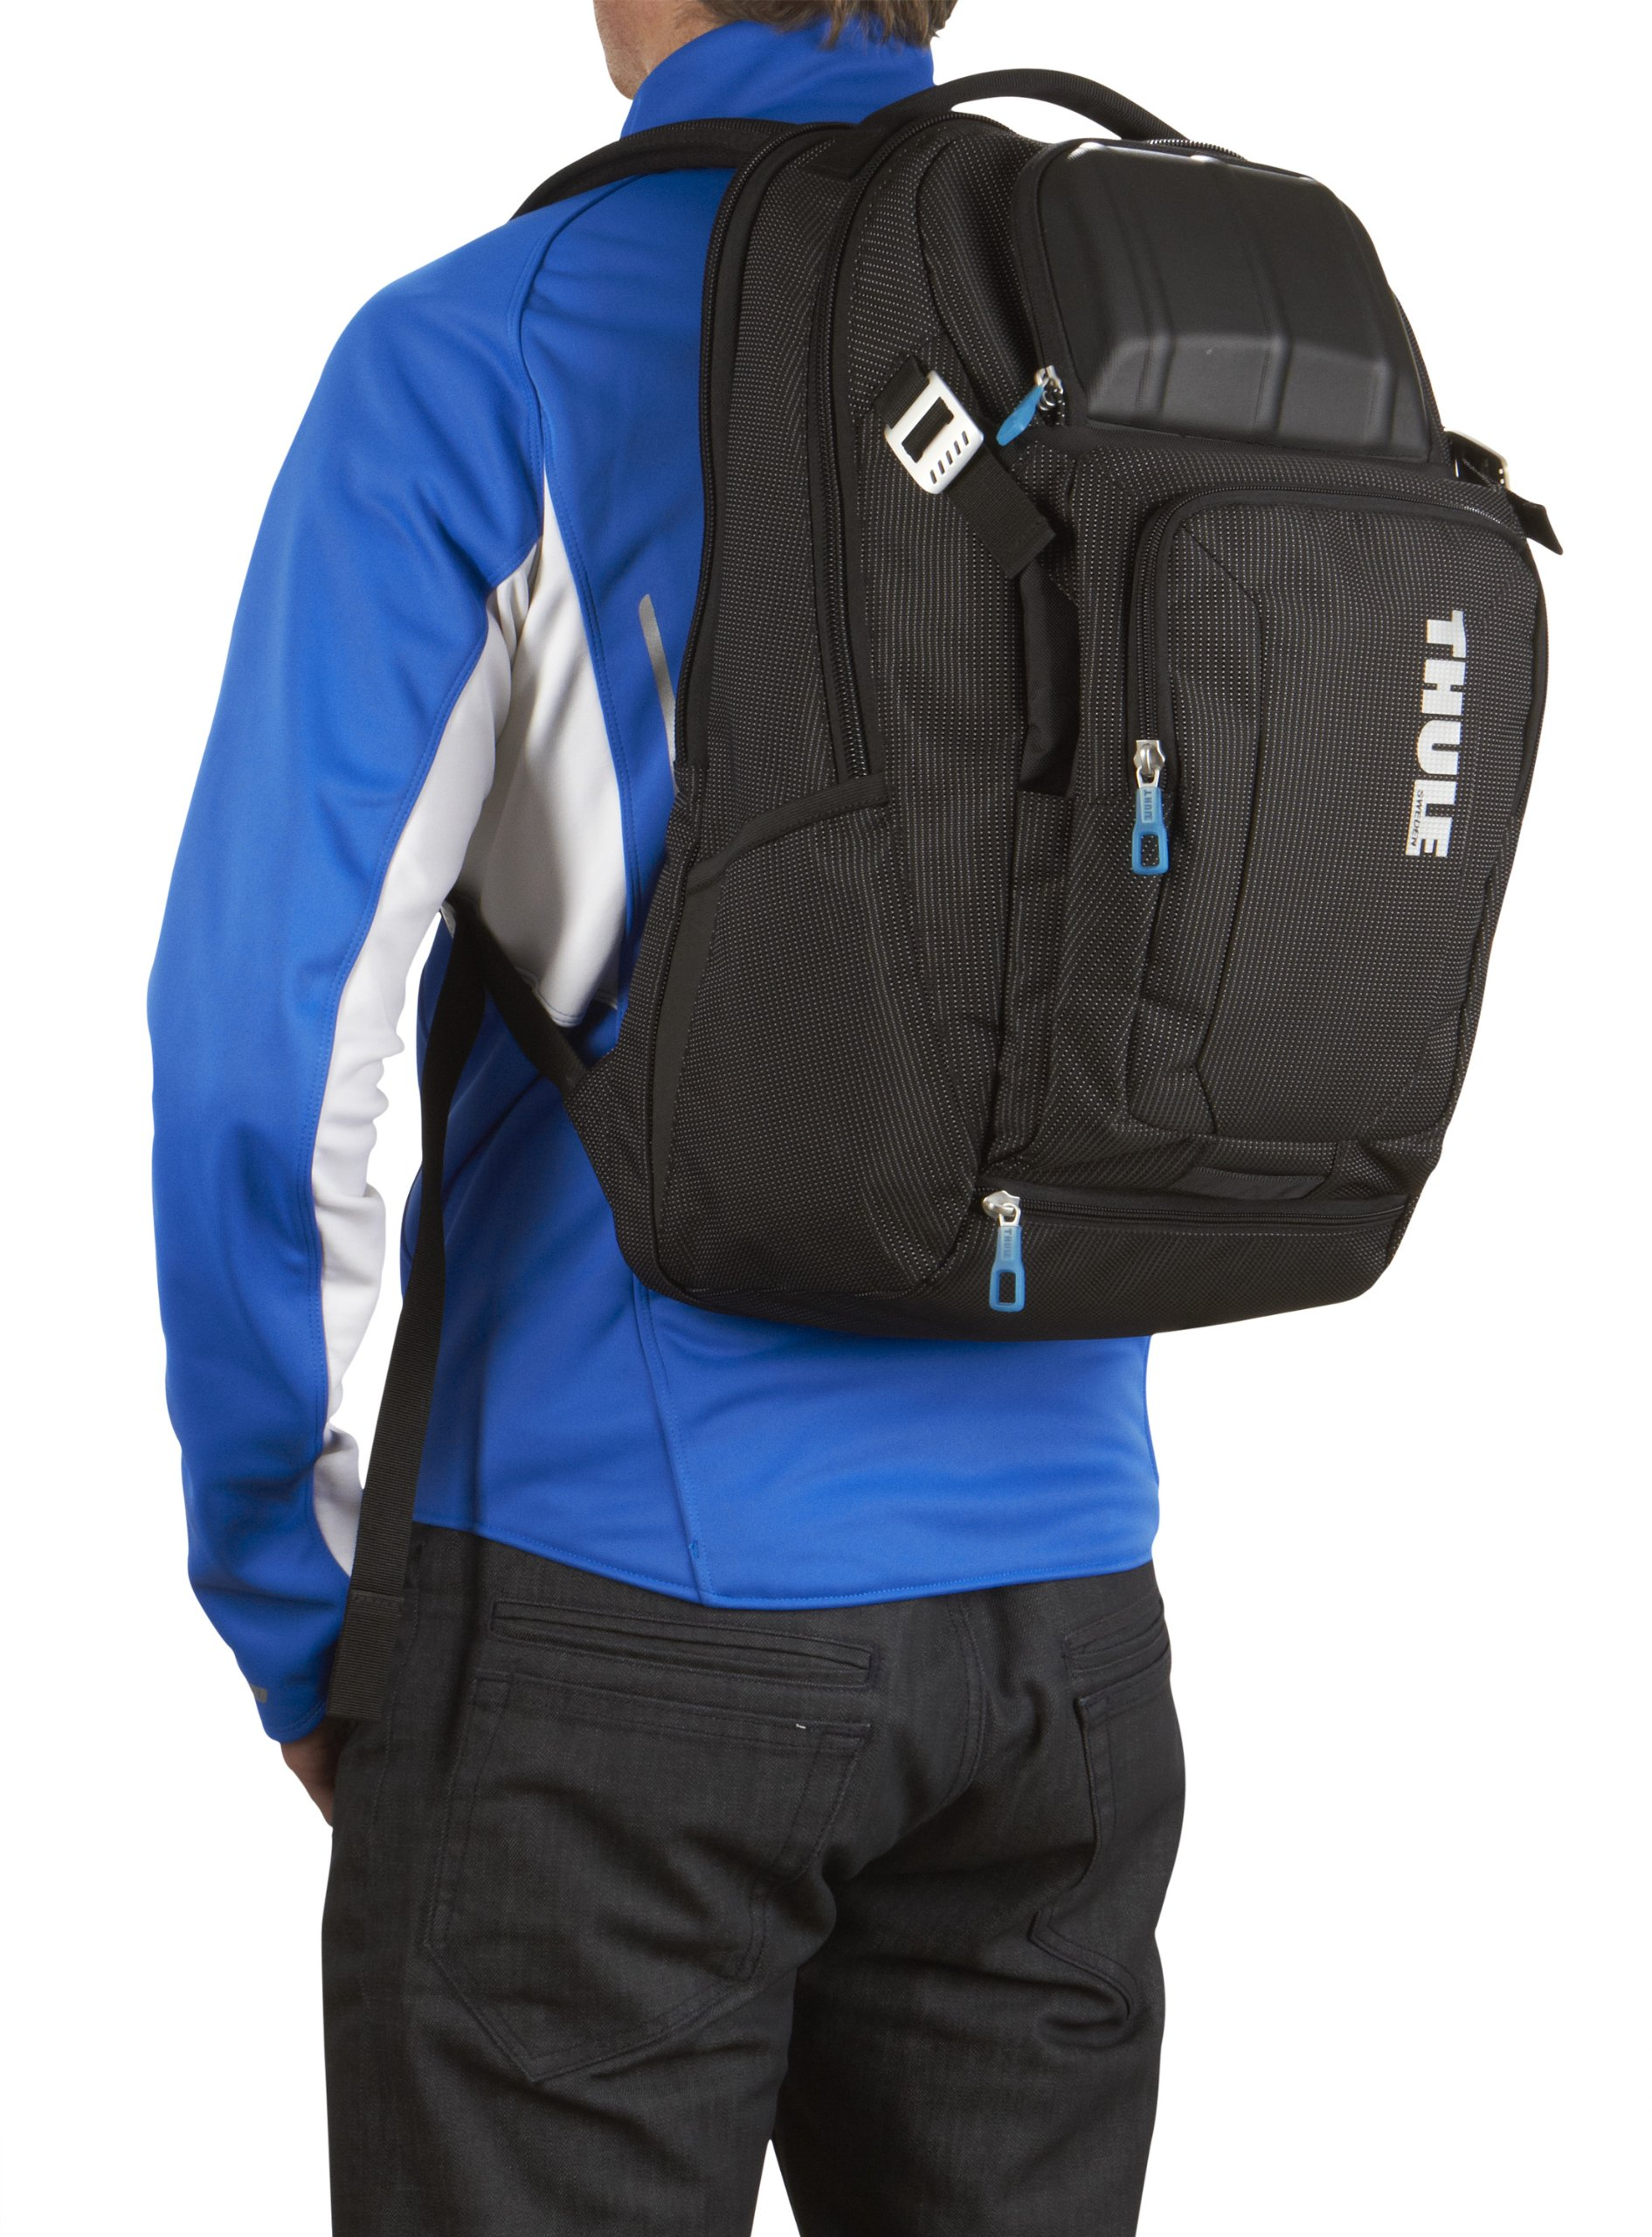 Thule Crossover 32L Backpack - Black by Thule (Image #6)